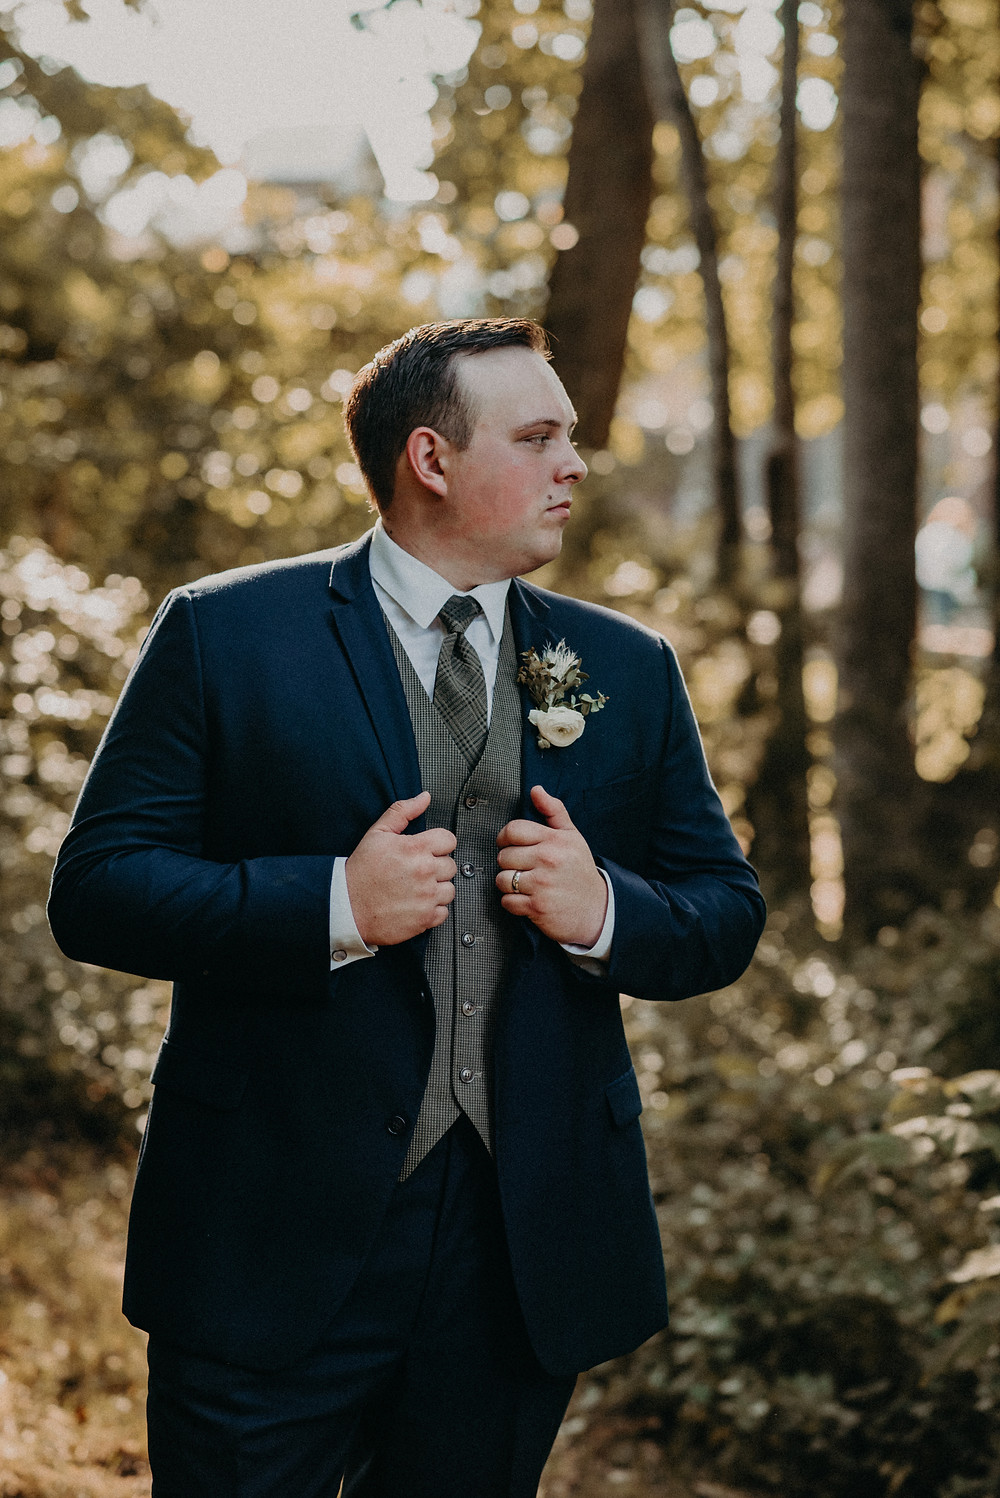 Groom ready for the wedding at Cherry Hollow Farm, GA